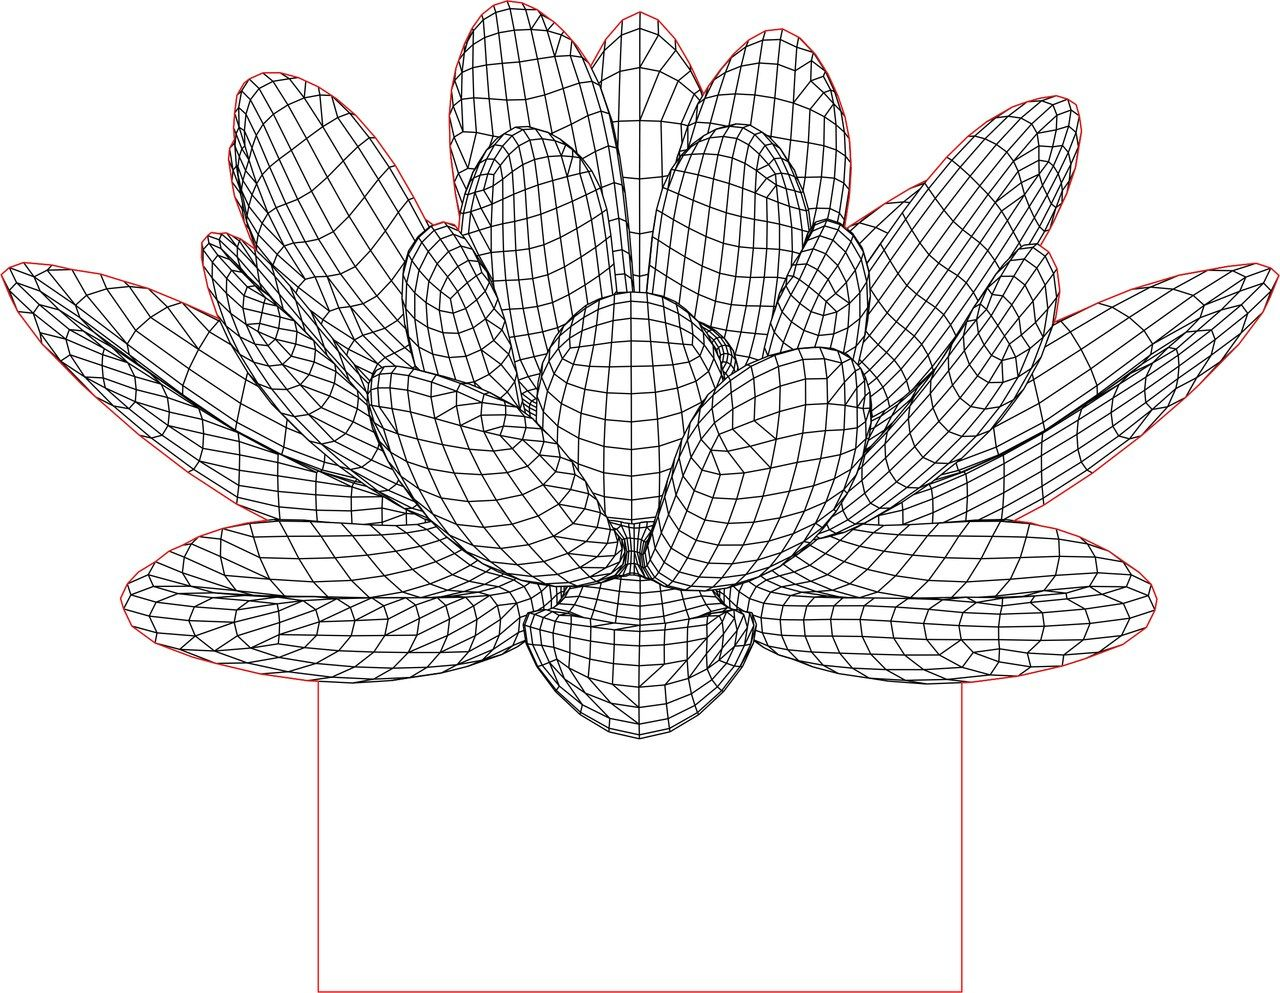 Acrile led lotus flower 3d illusion lamp vector file to build in acrile led lotus flower 3d illusion lamp vector file izmirmasajfo